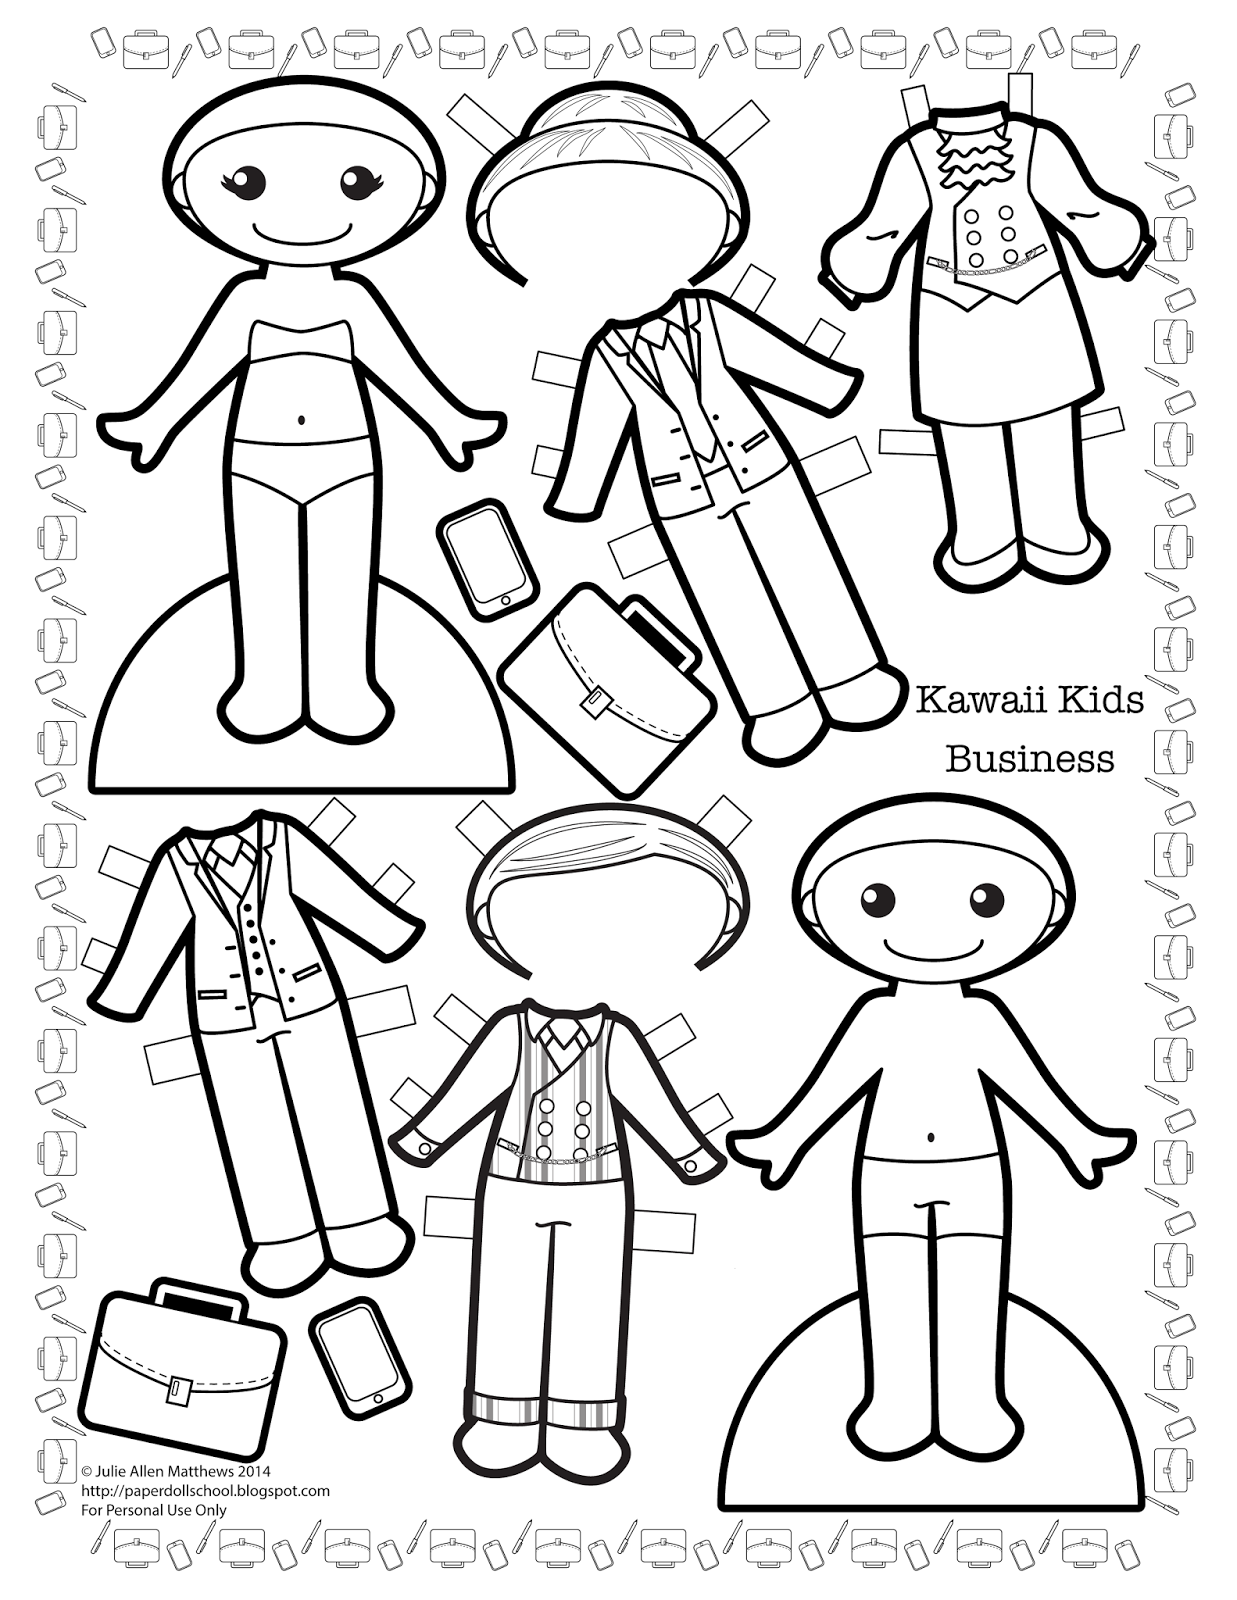 Paper Doll School Kawaii Kids Business Paper dolls to print and